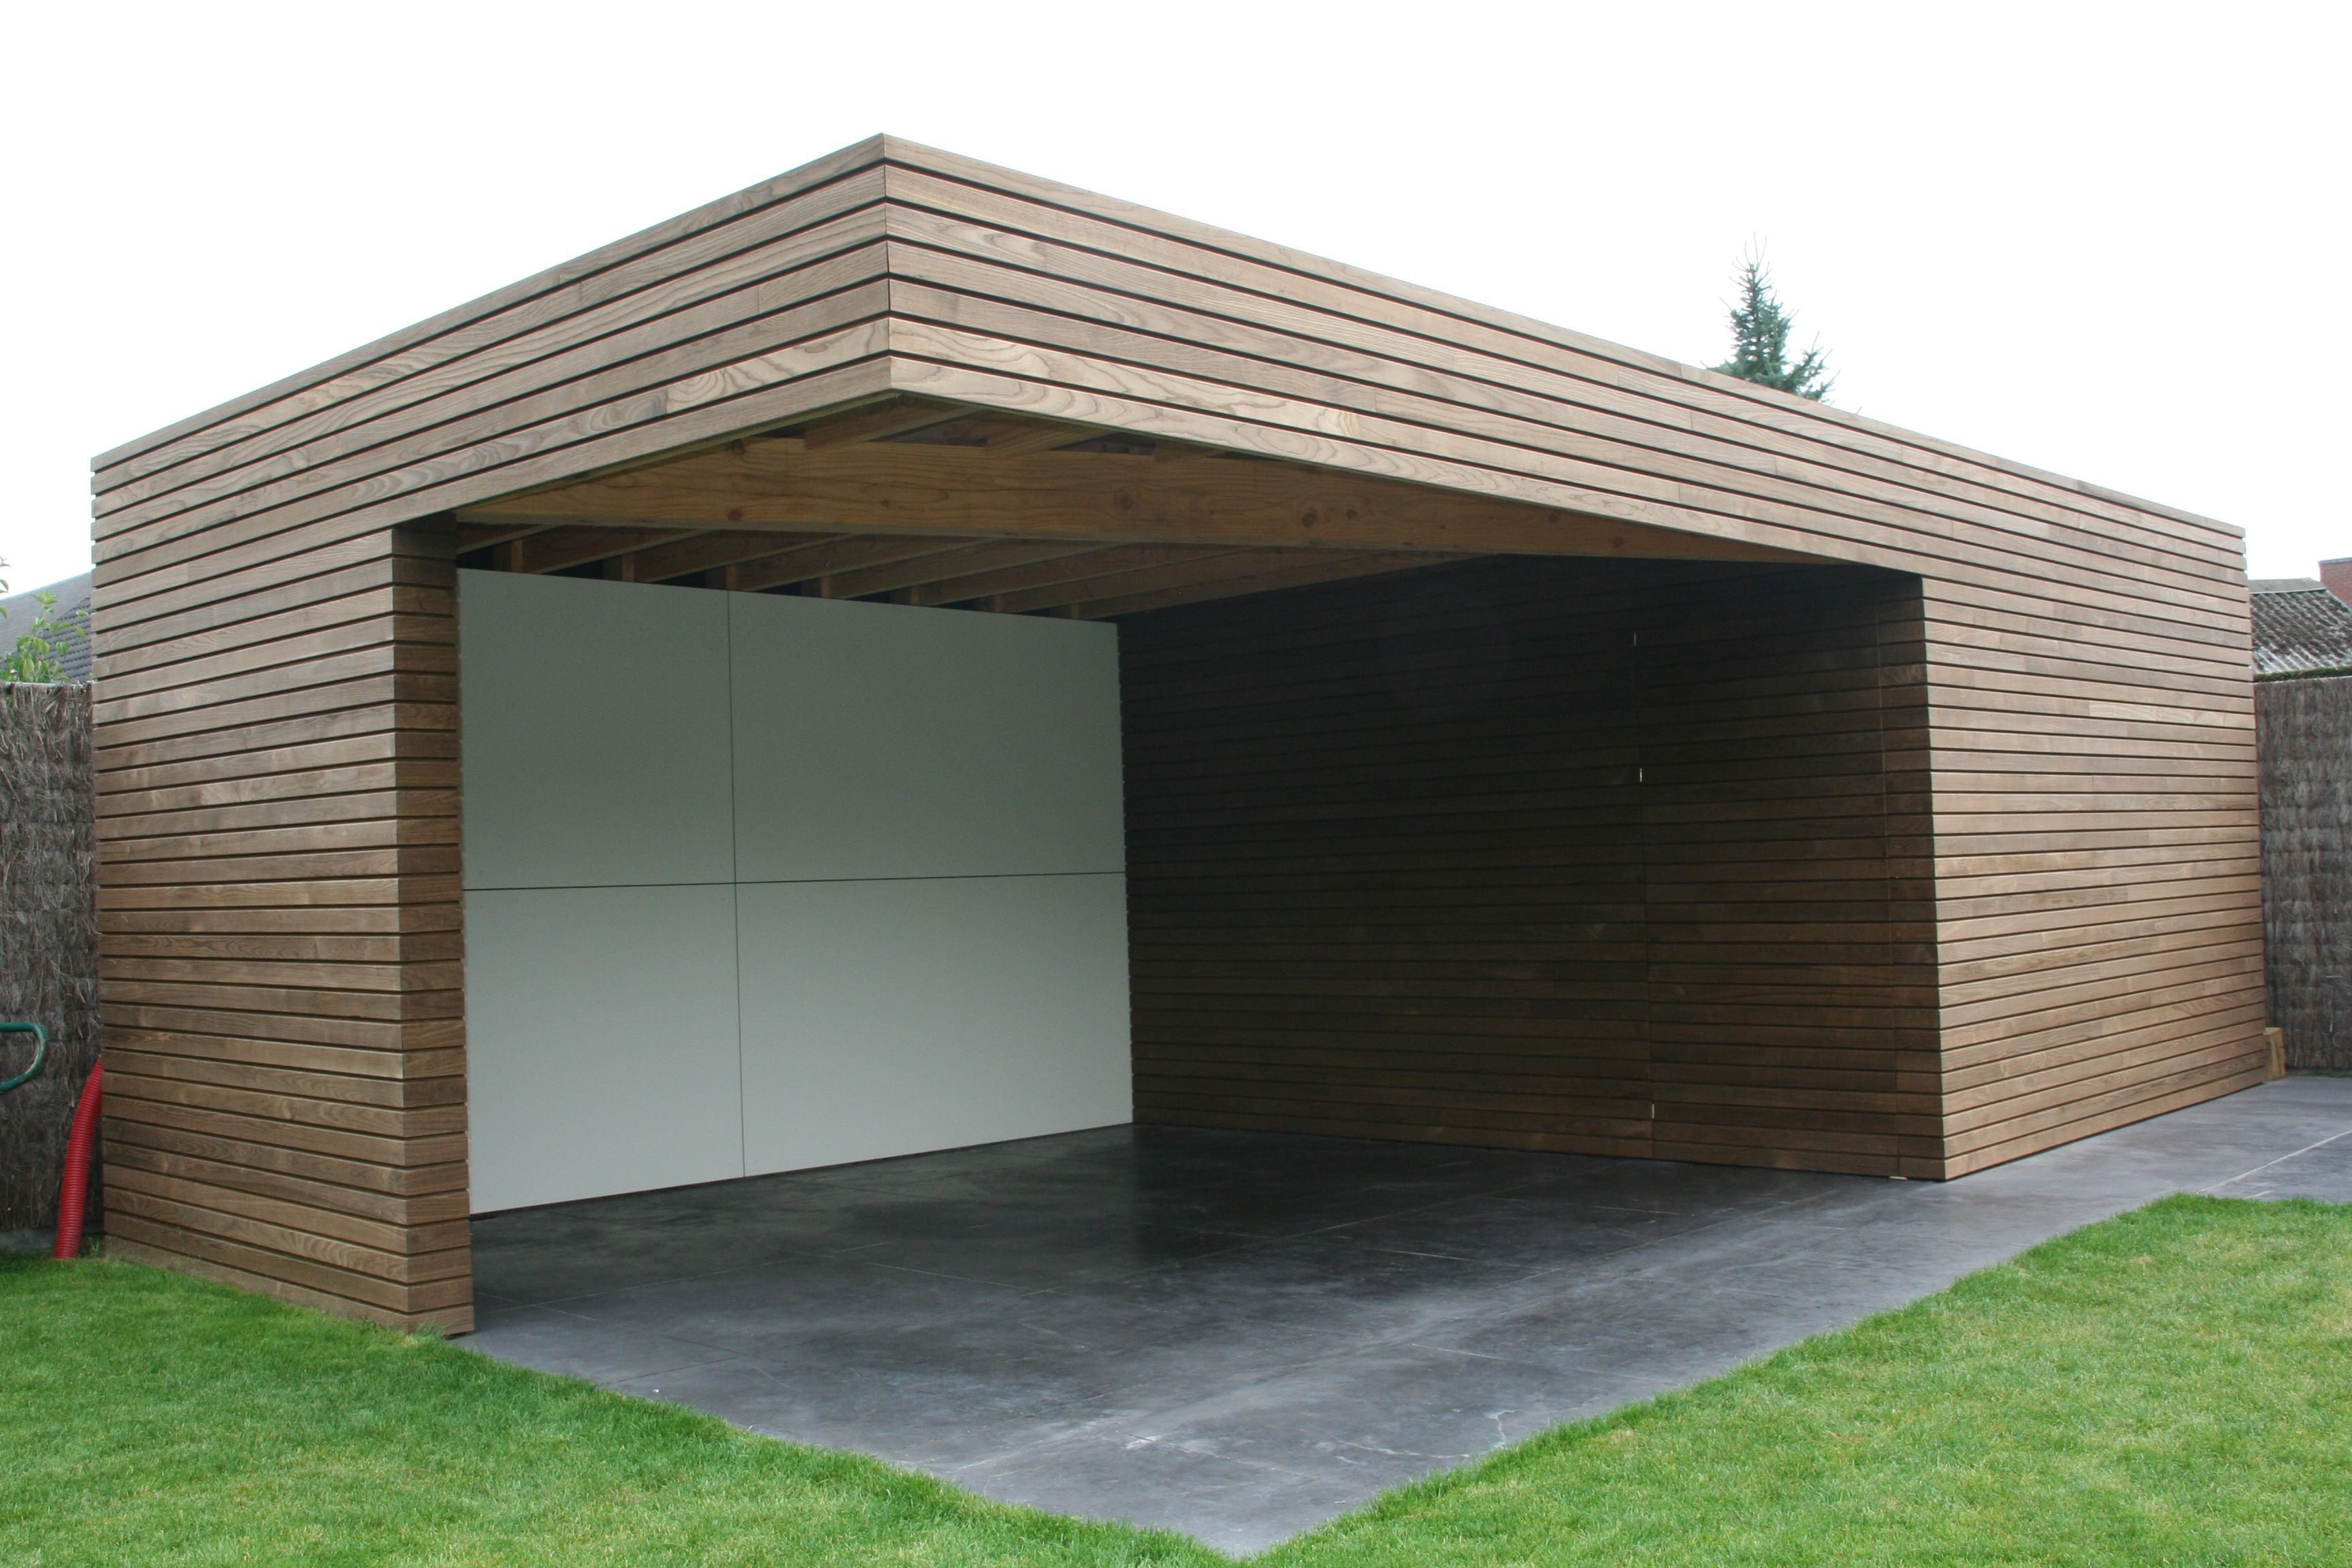 Houten gevelbekleding google zoeken hout pinterest for Contemporary carport design architecture